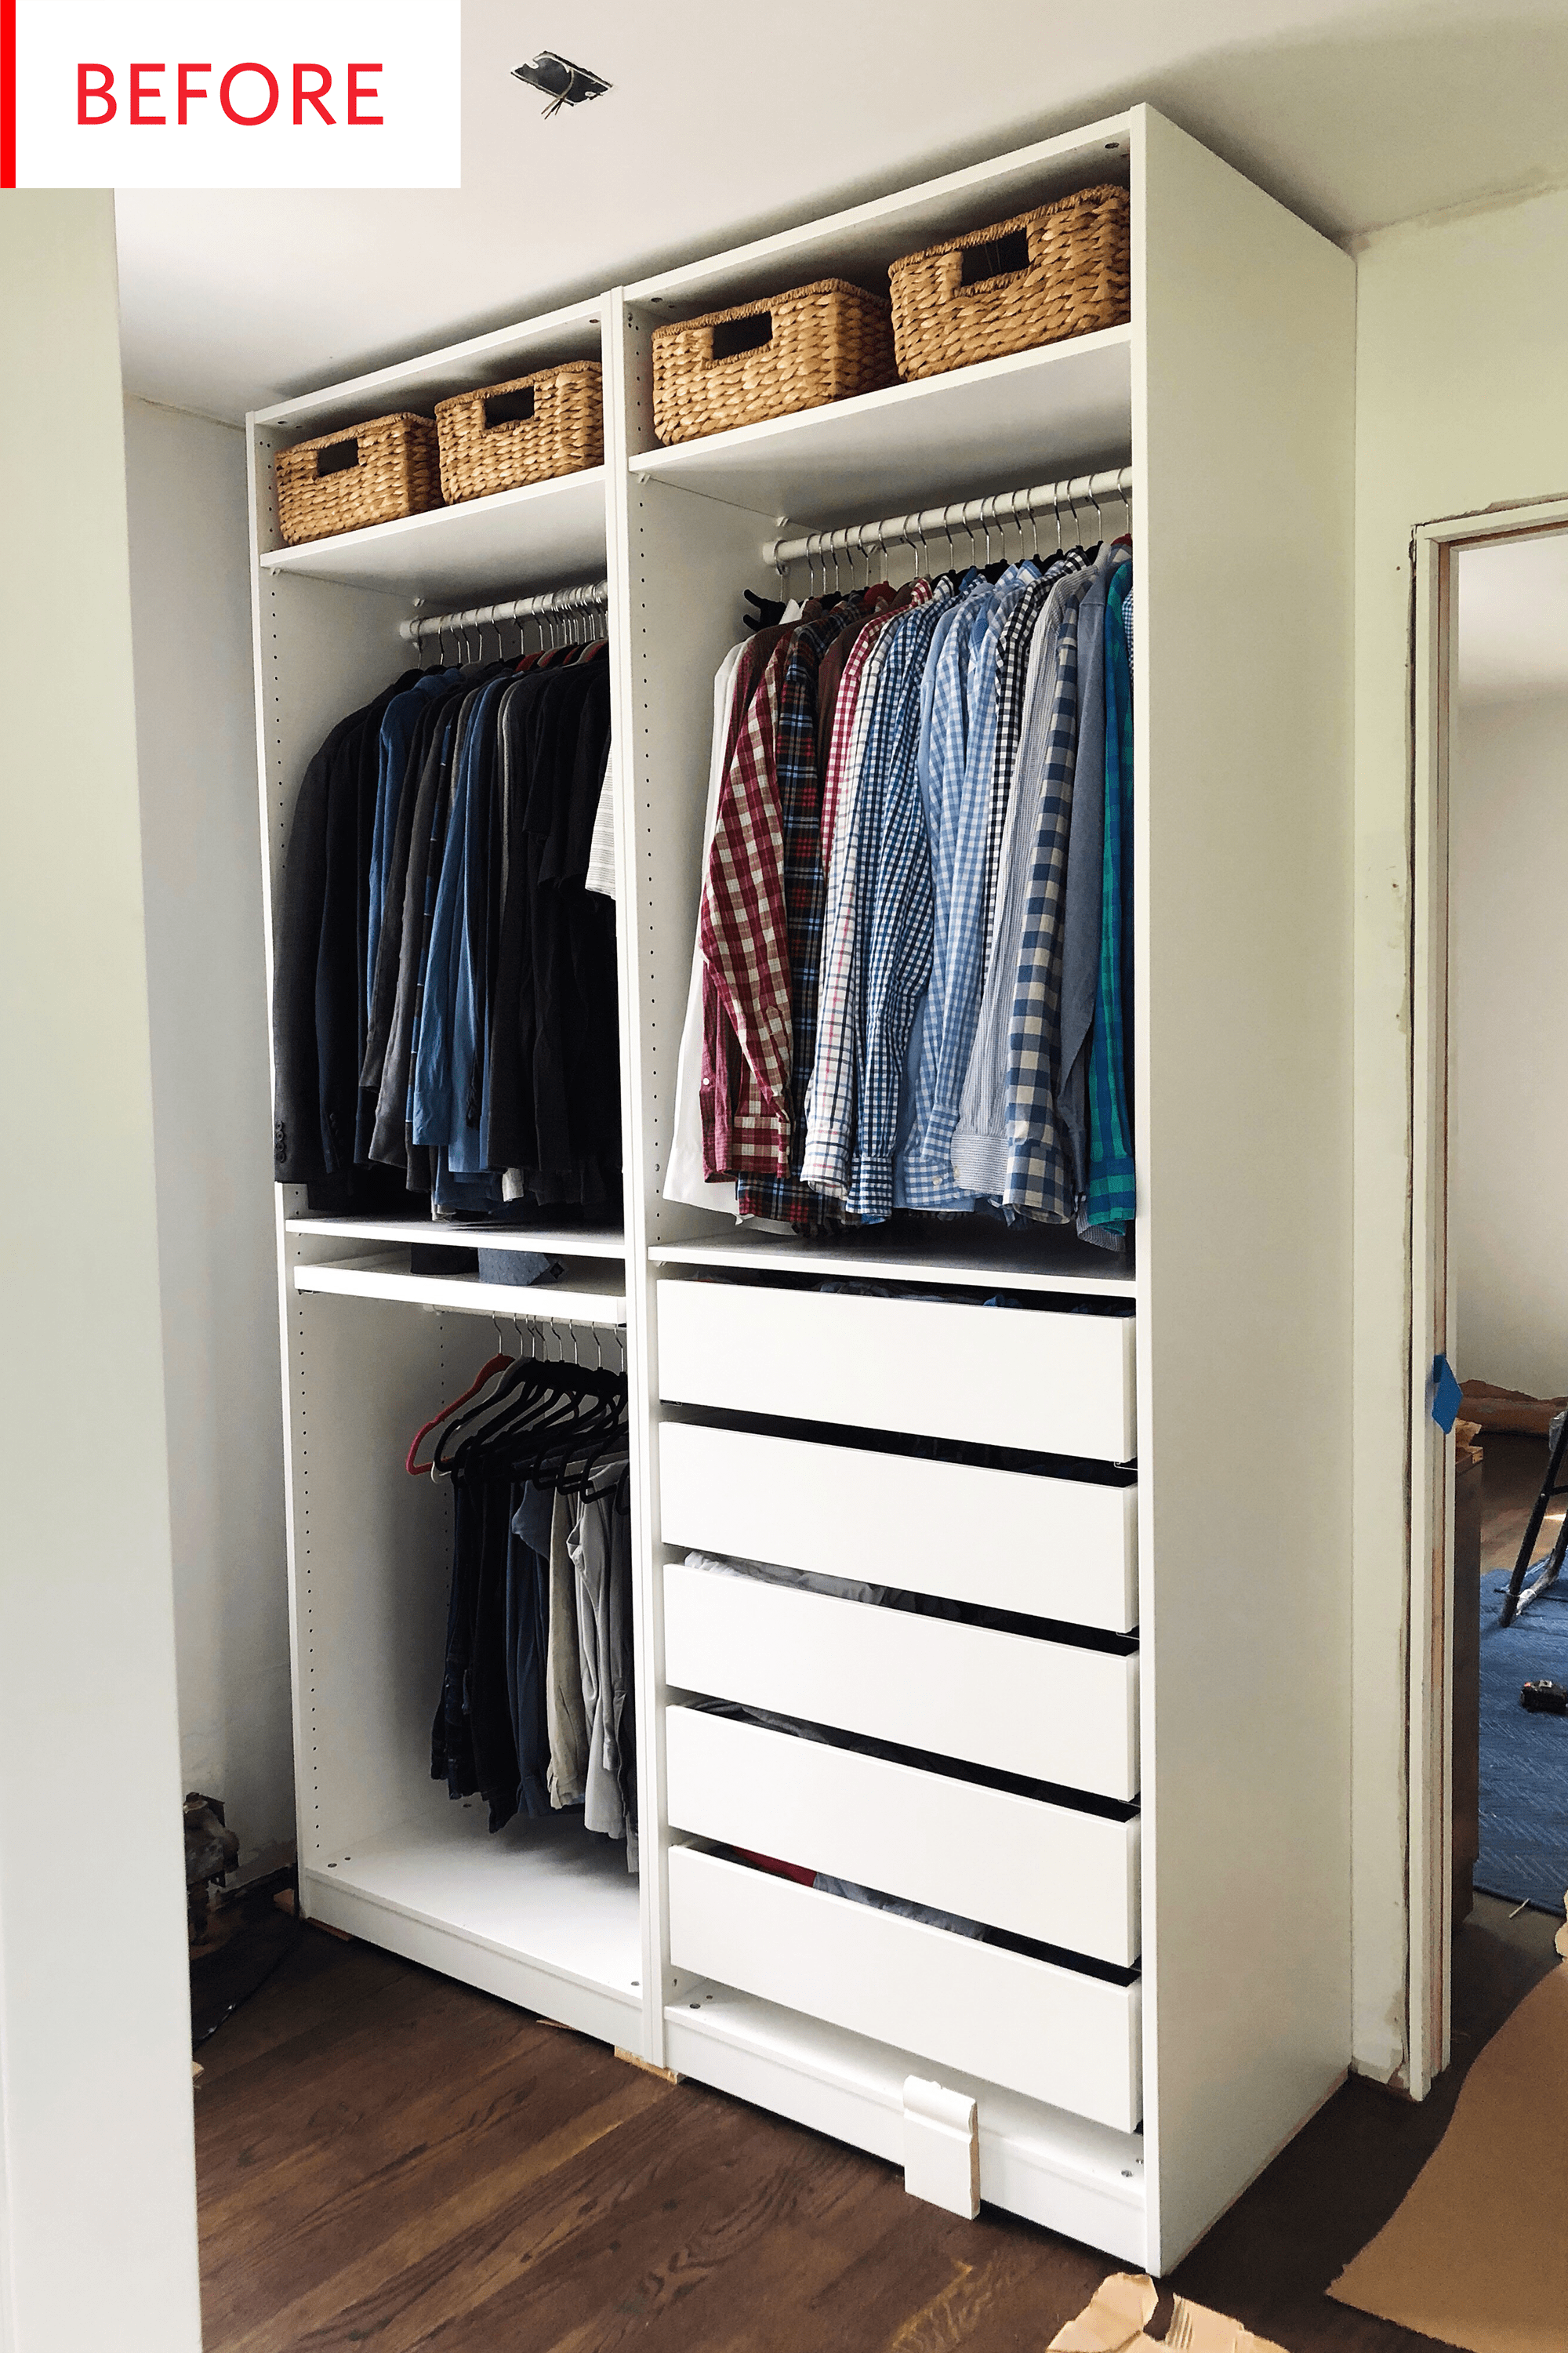 Ikea Pax Click And Collect Smart Ikea Pax Closet Hack Before And After Photos